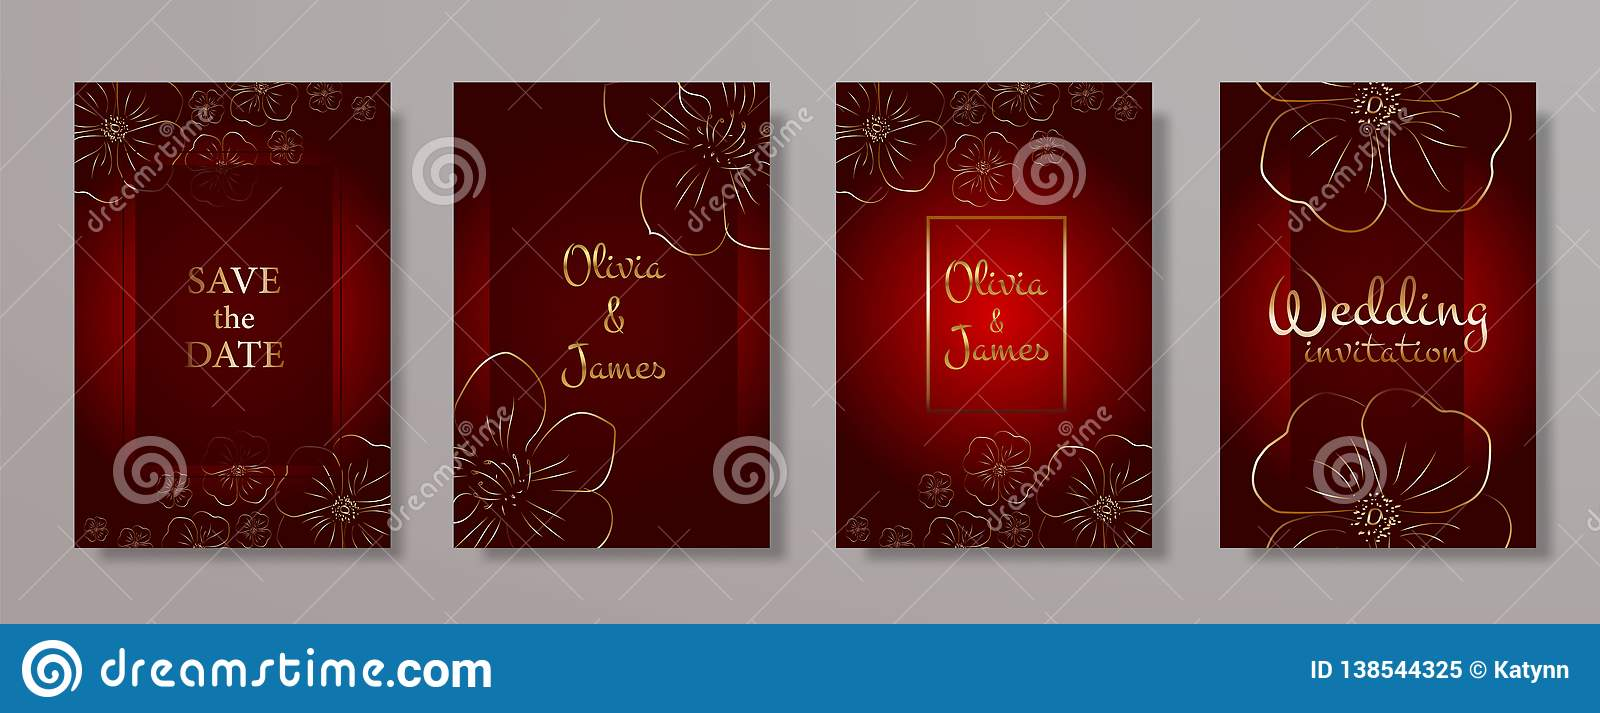 Wedding Invitation Card Vector Template For Wedding